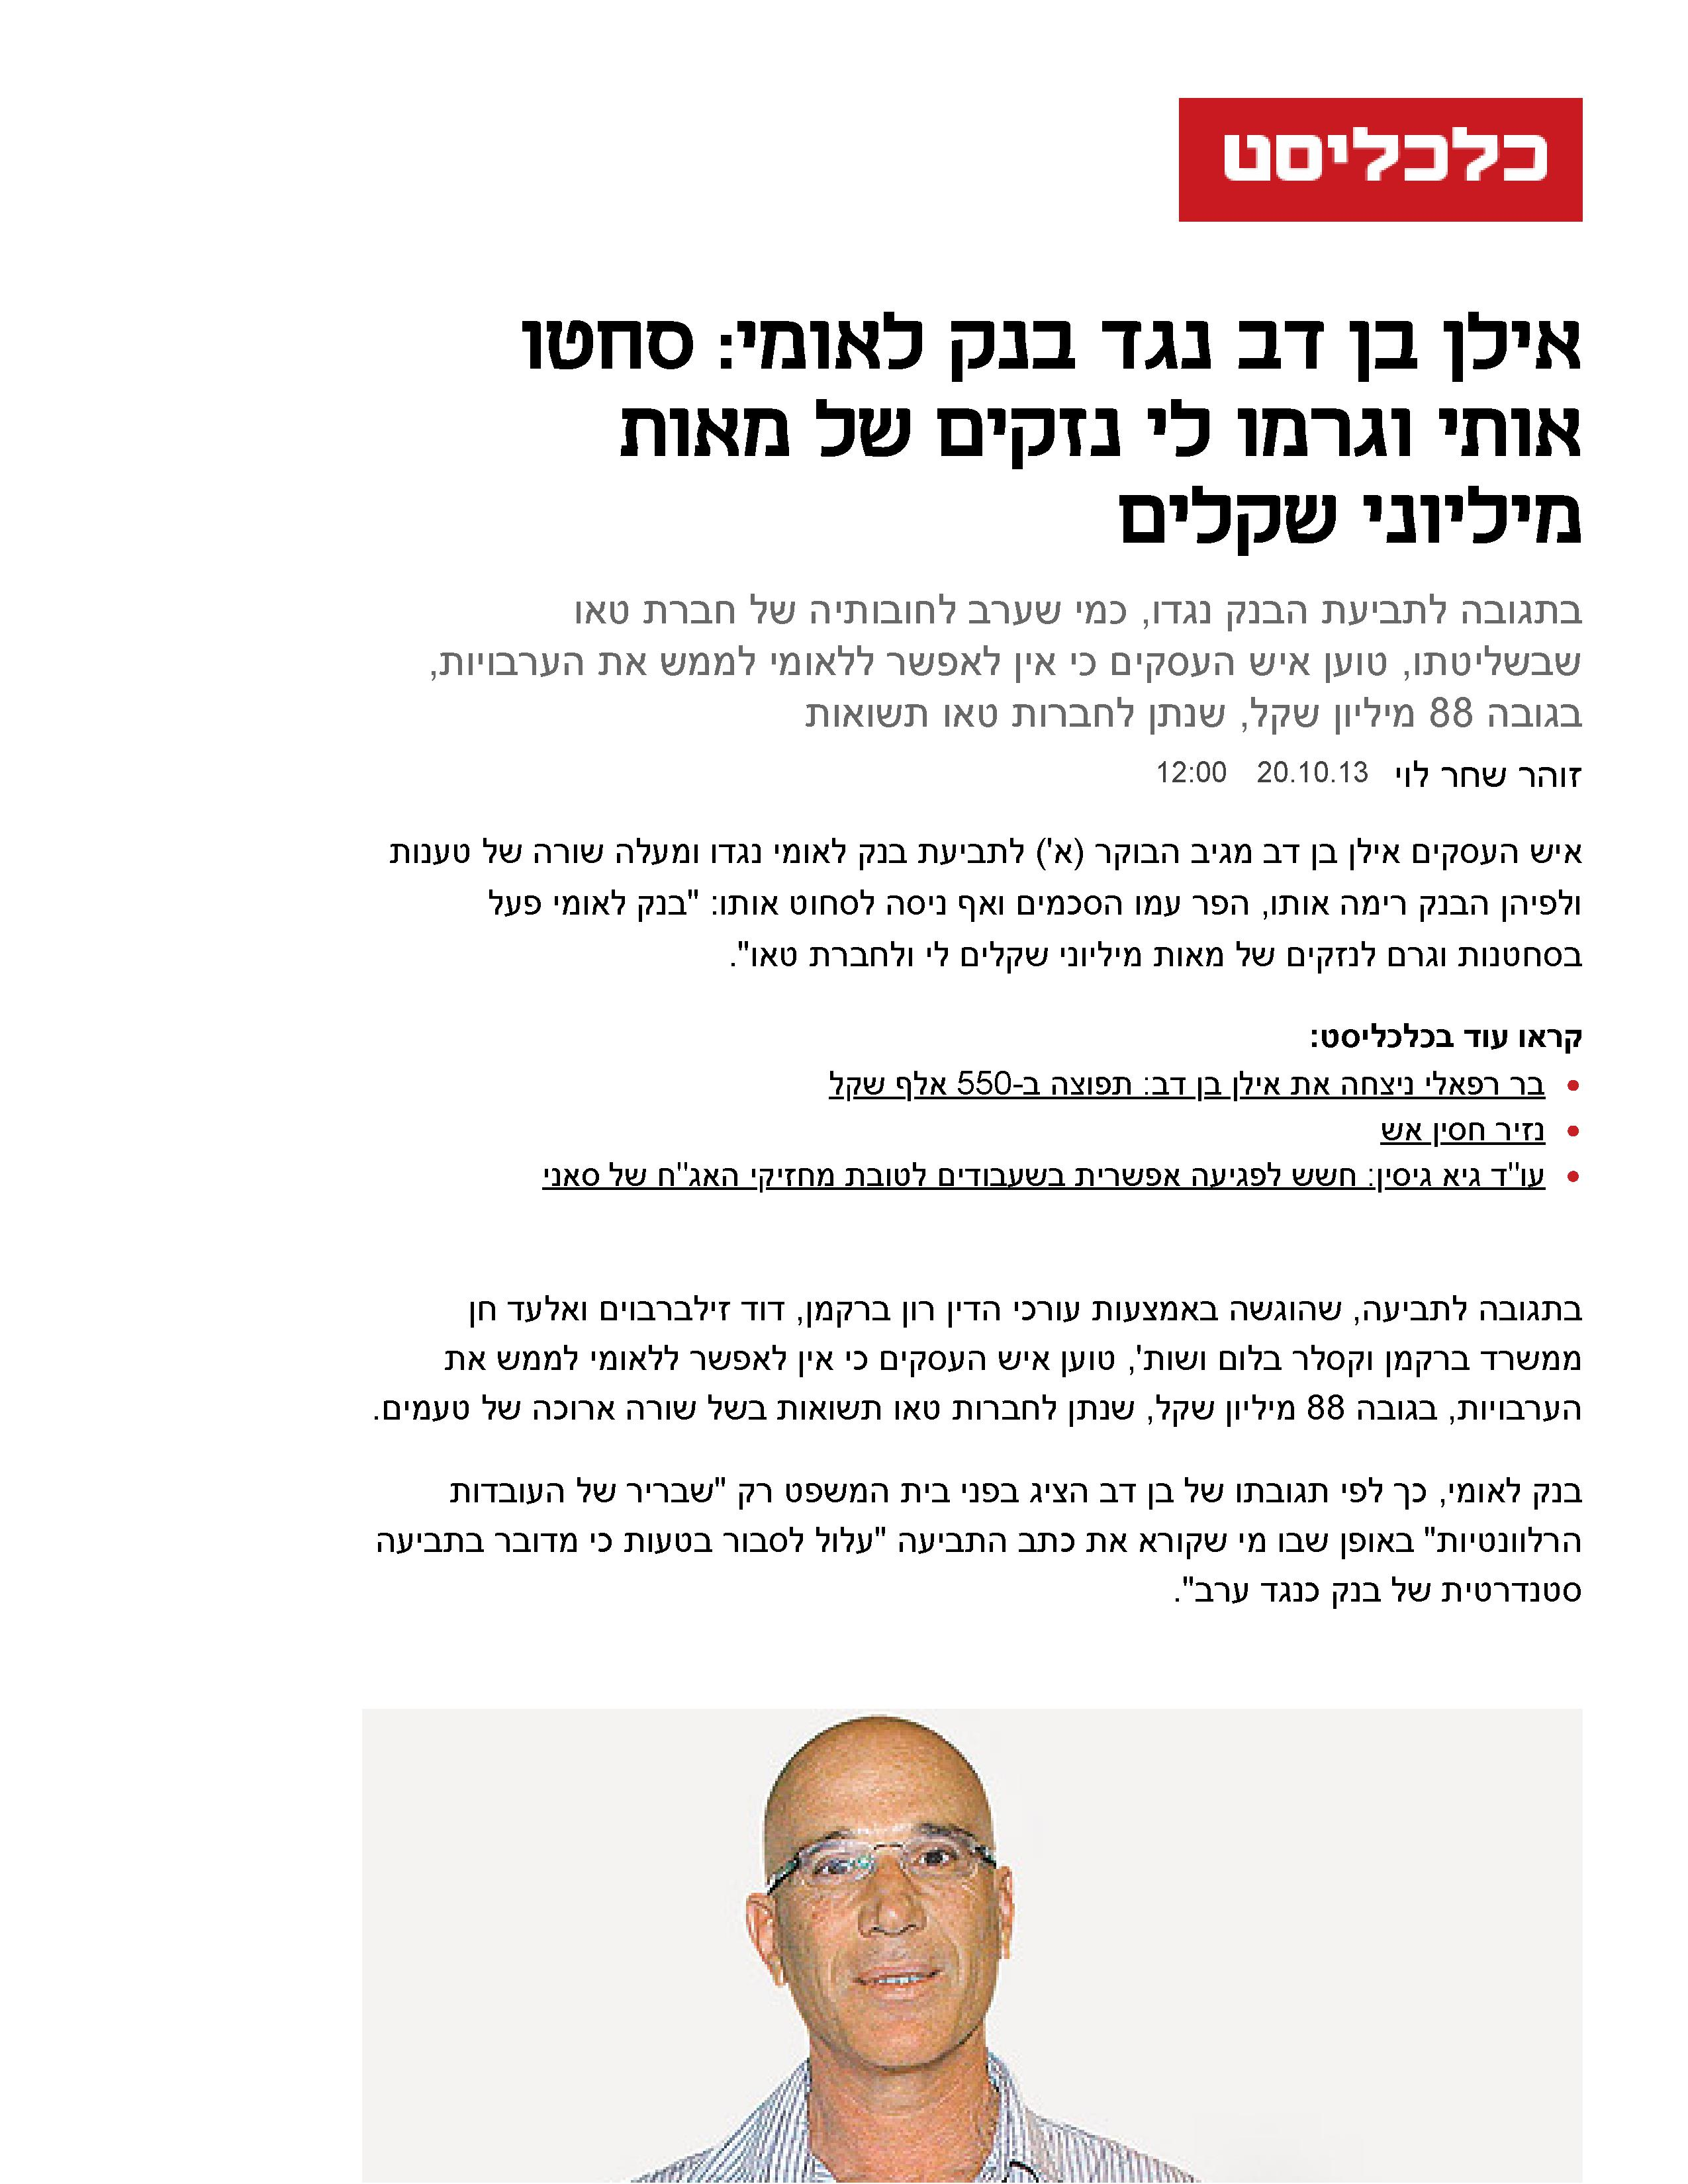 Ilan Ben-Dov against Bank Leumi: They extorted me and caused me hundreds of millions of shekels in damages